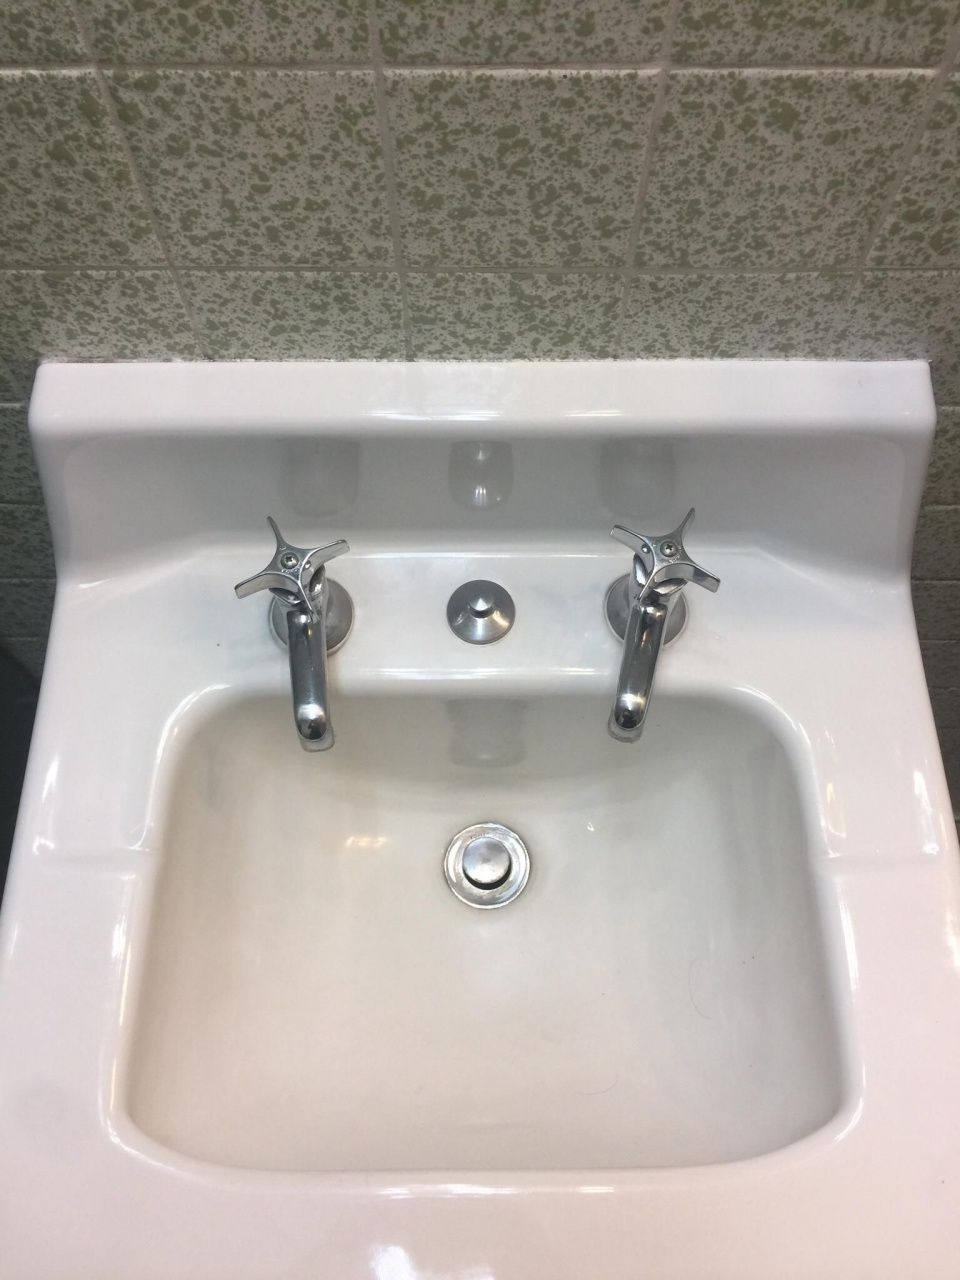 How To Install Drop In Bathroom Sink Clogged Sink Bathroom Bathroom Sink Bathroom Sink Stopper [ 1280 x 960 Pixel ]